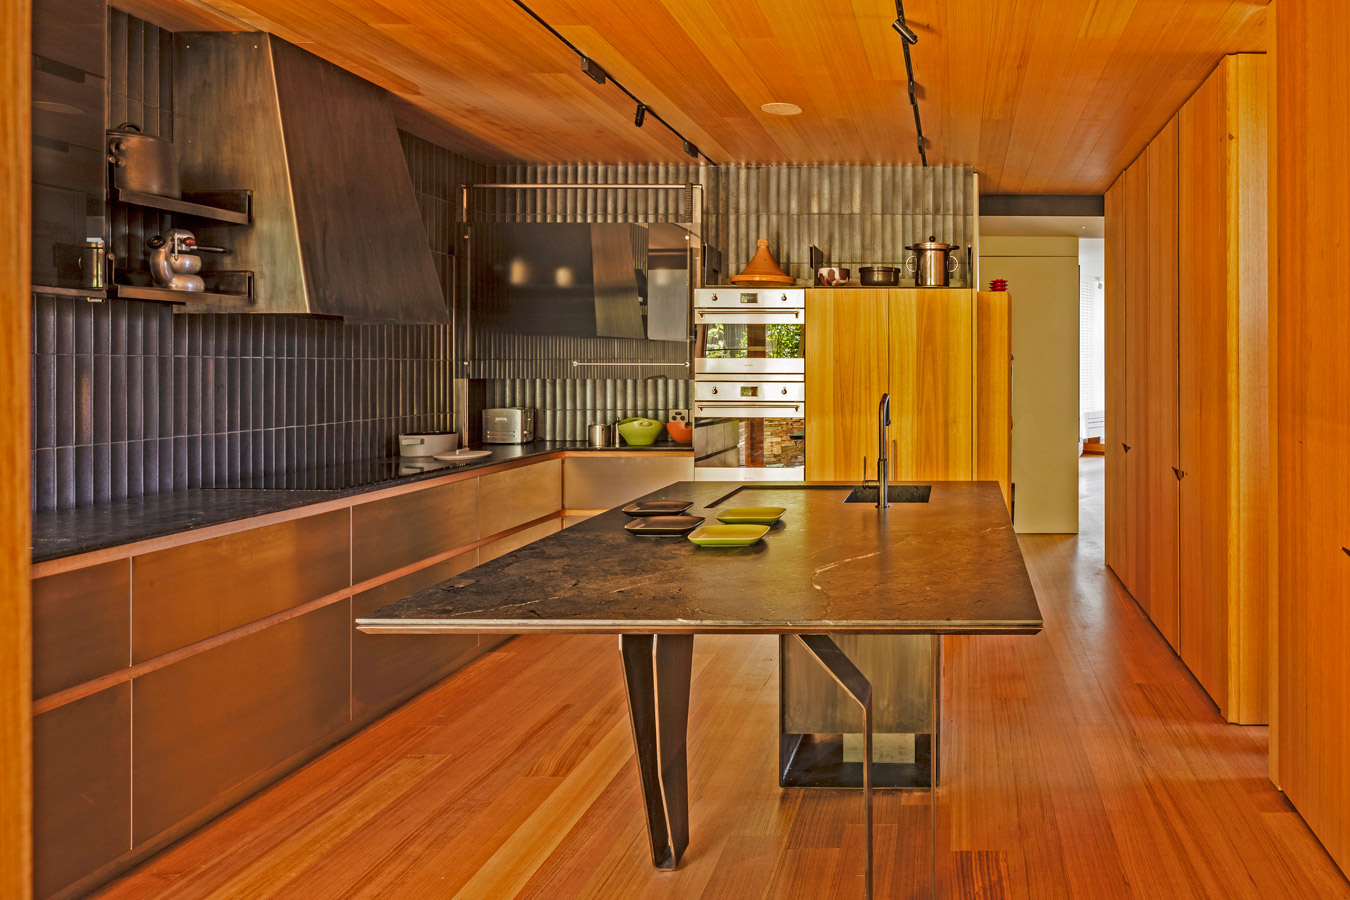 Kew Residence, John Wardle, Overend Constructions, kitchen, bespoke steel island bench, architectural, design, joinery